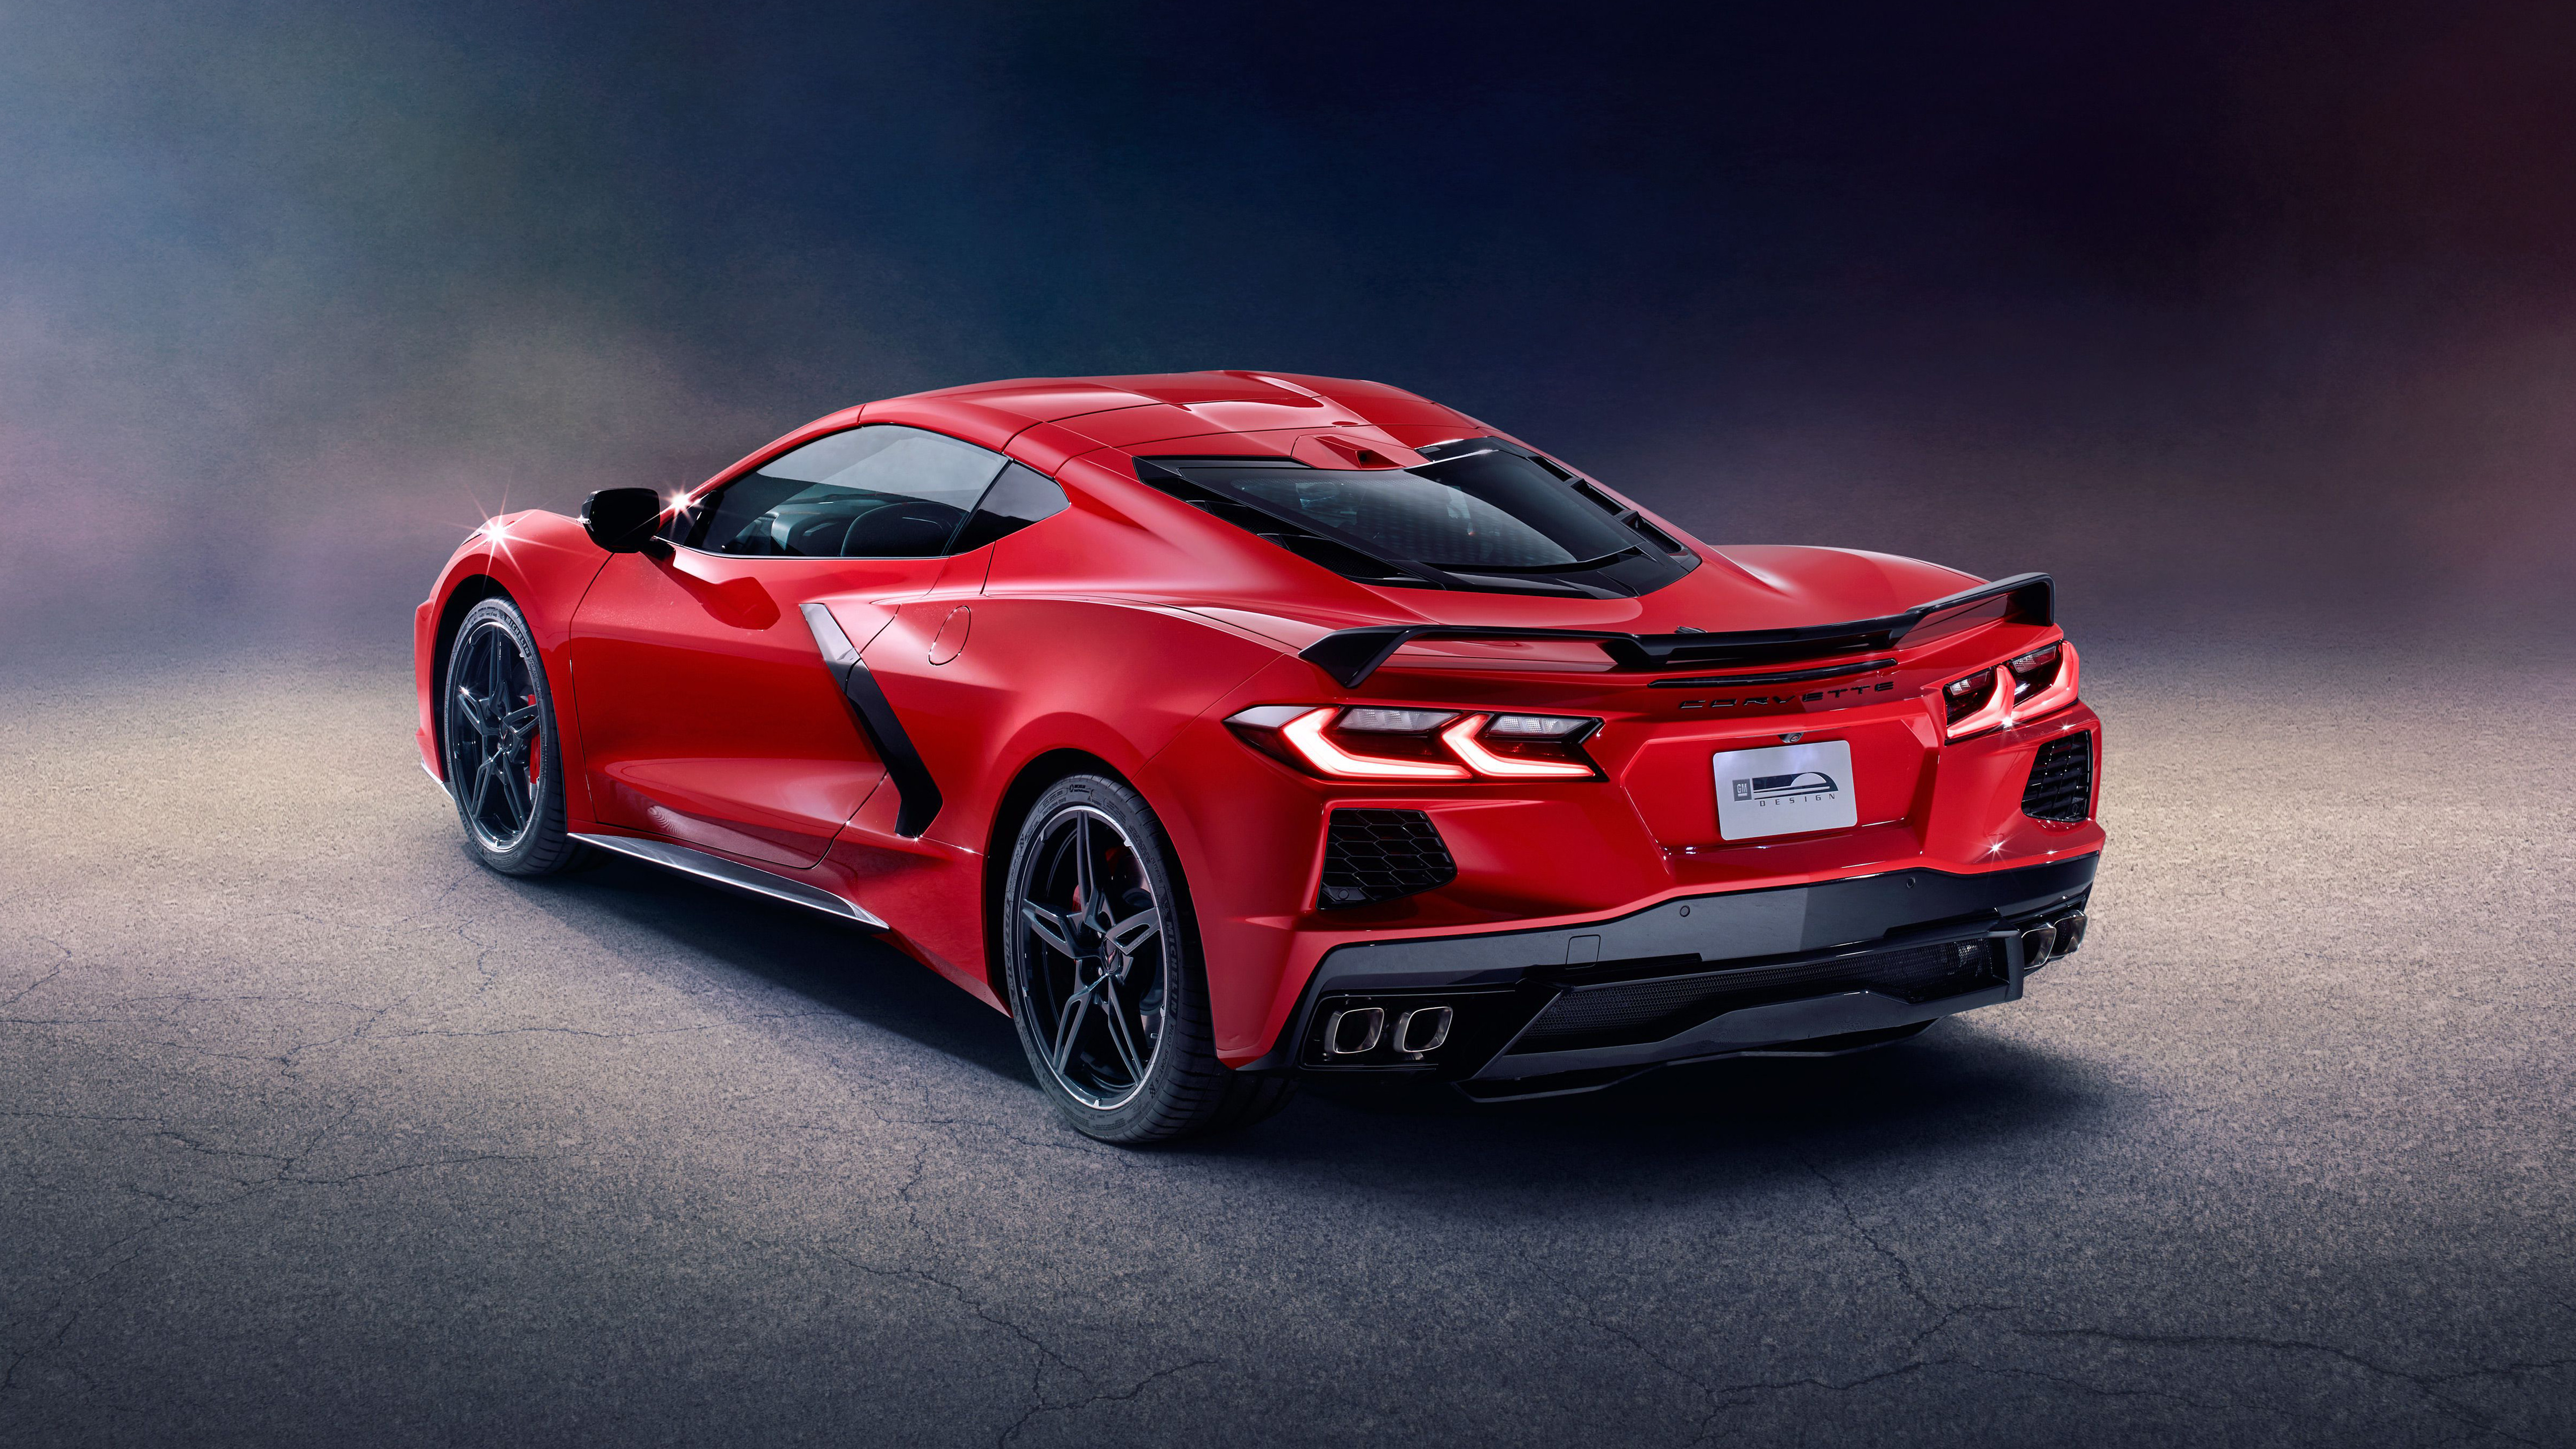 2020 Chevrolet Corvette Stingray Z51 4K 6 Wallpaper HD Car 5120x2880